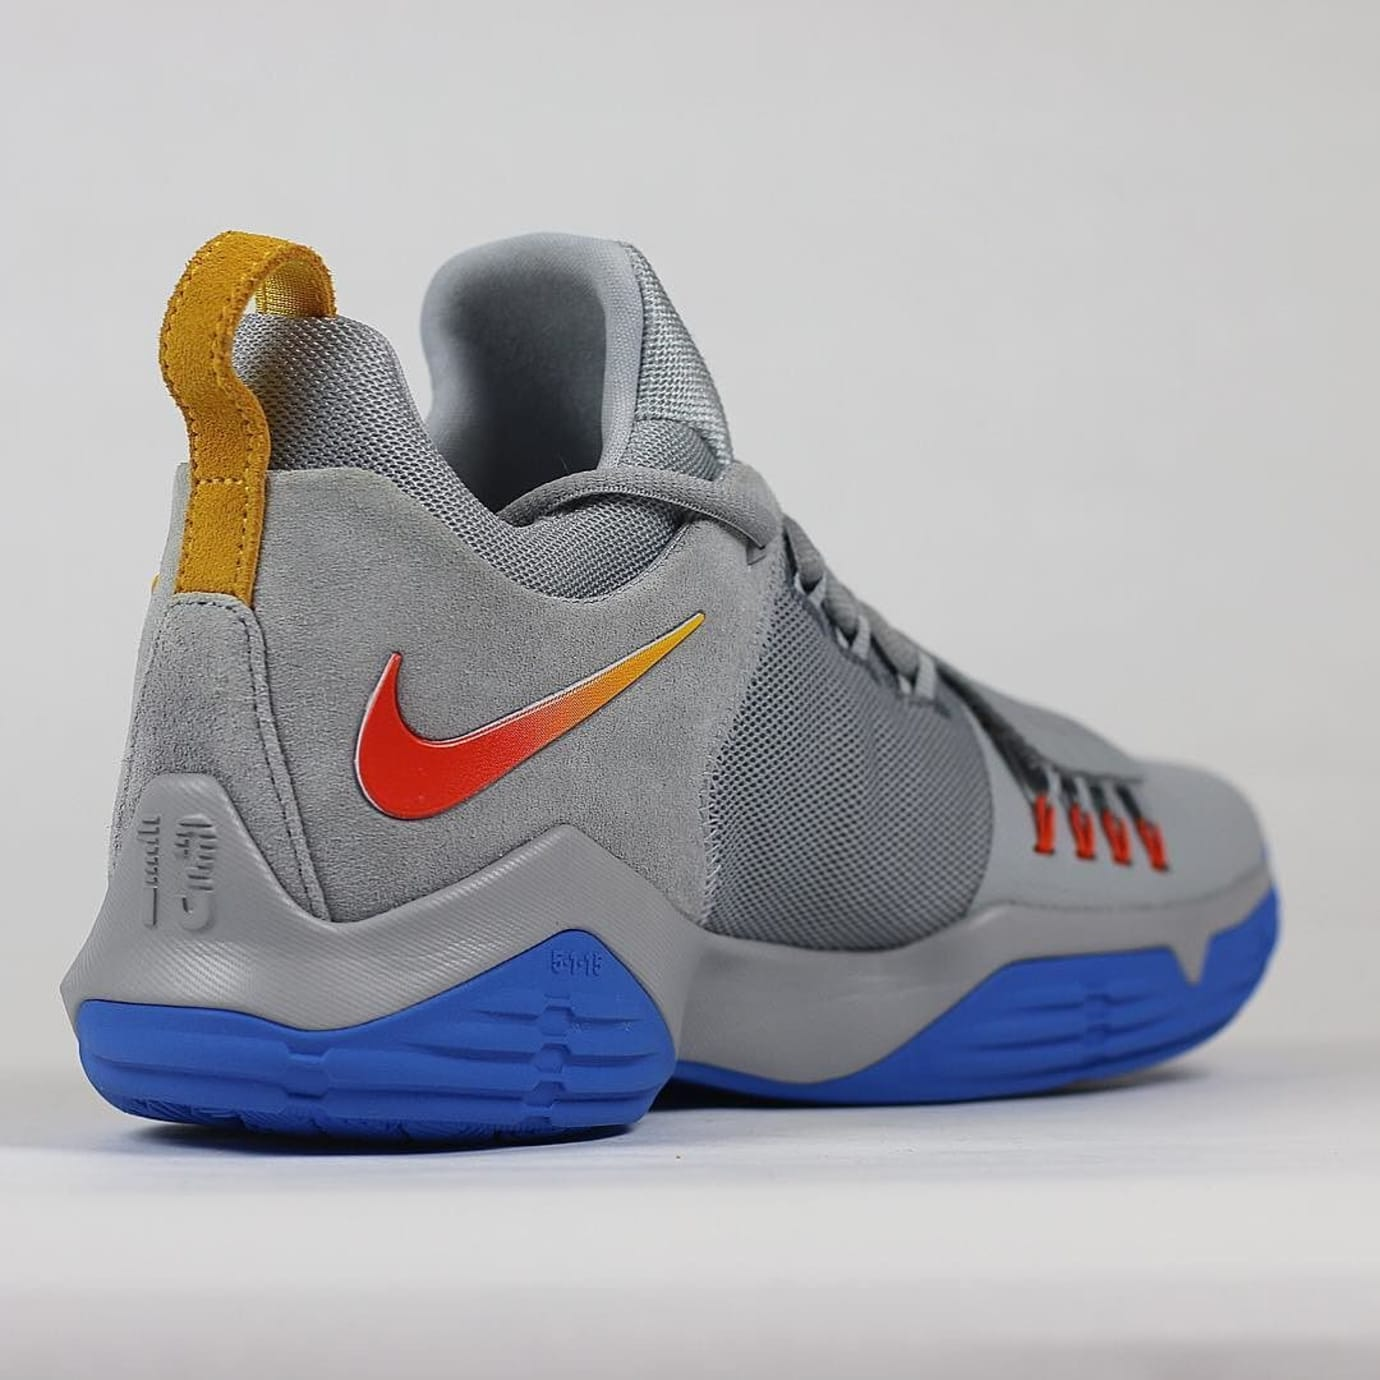 Paul George Nike PG1 Grey OKC Gradient PE Heel